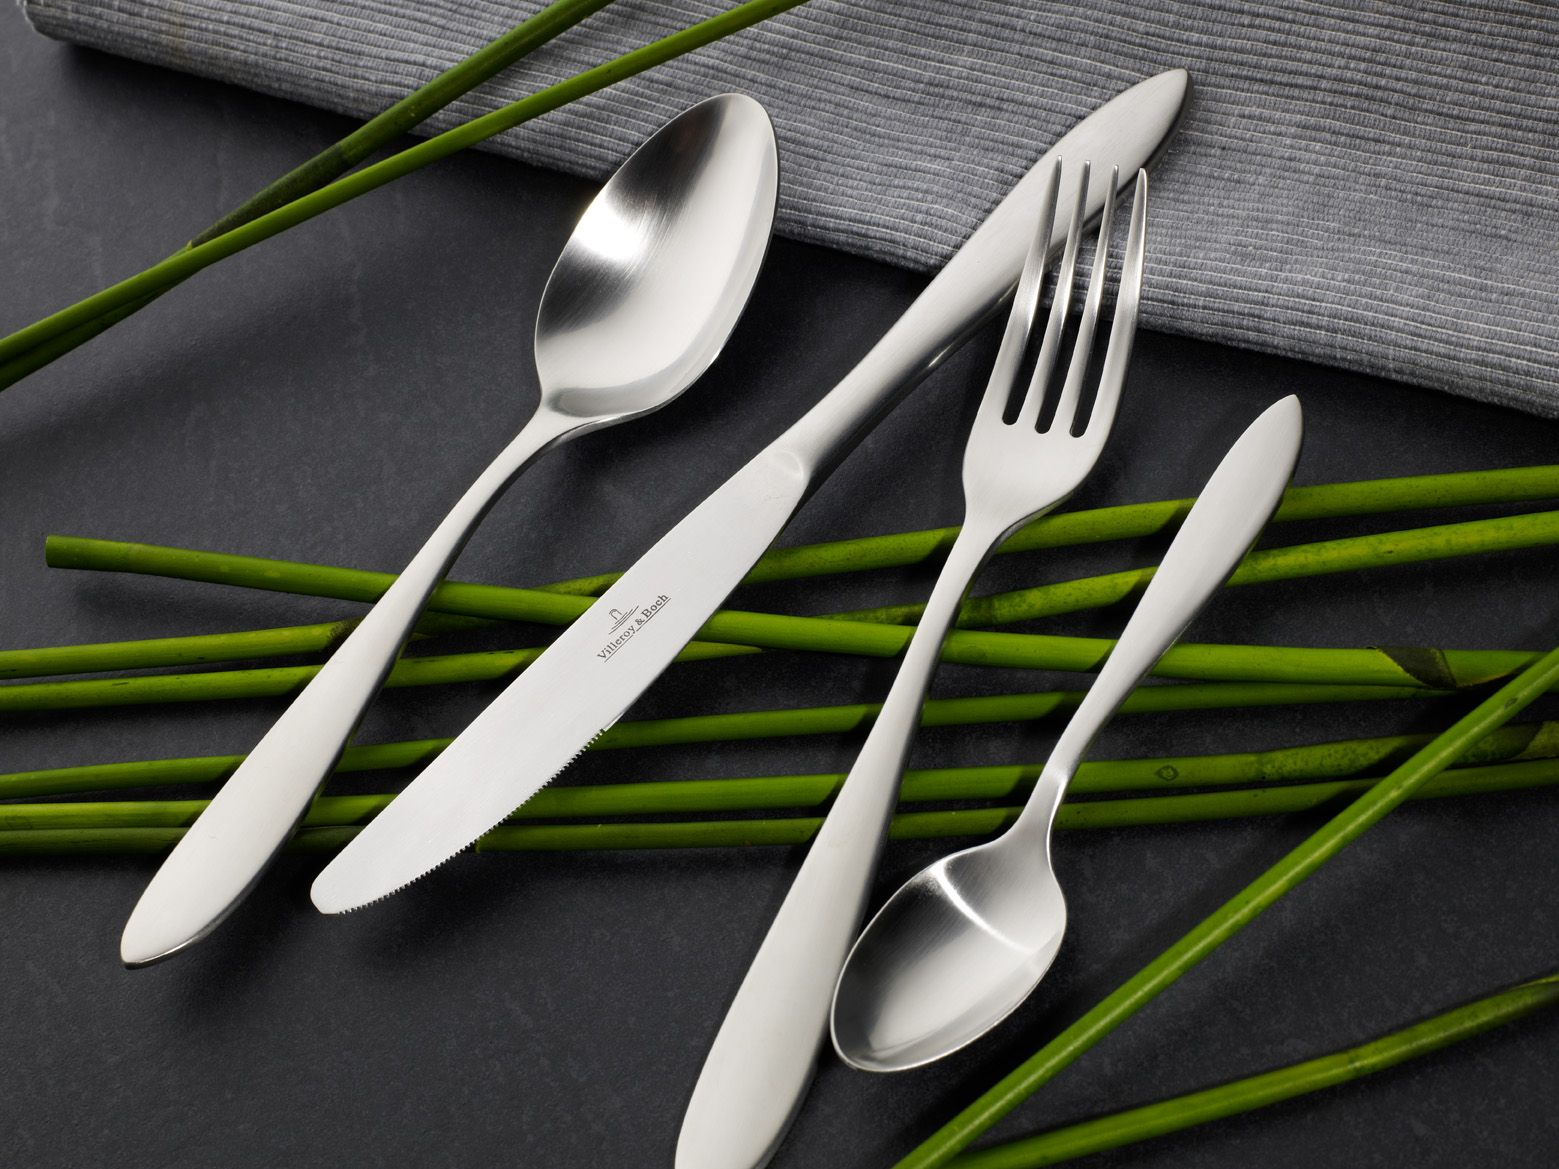 Arthur brushed cutlery set, 24 pieces